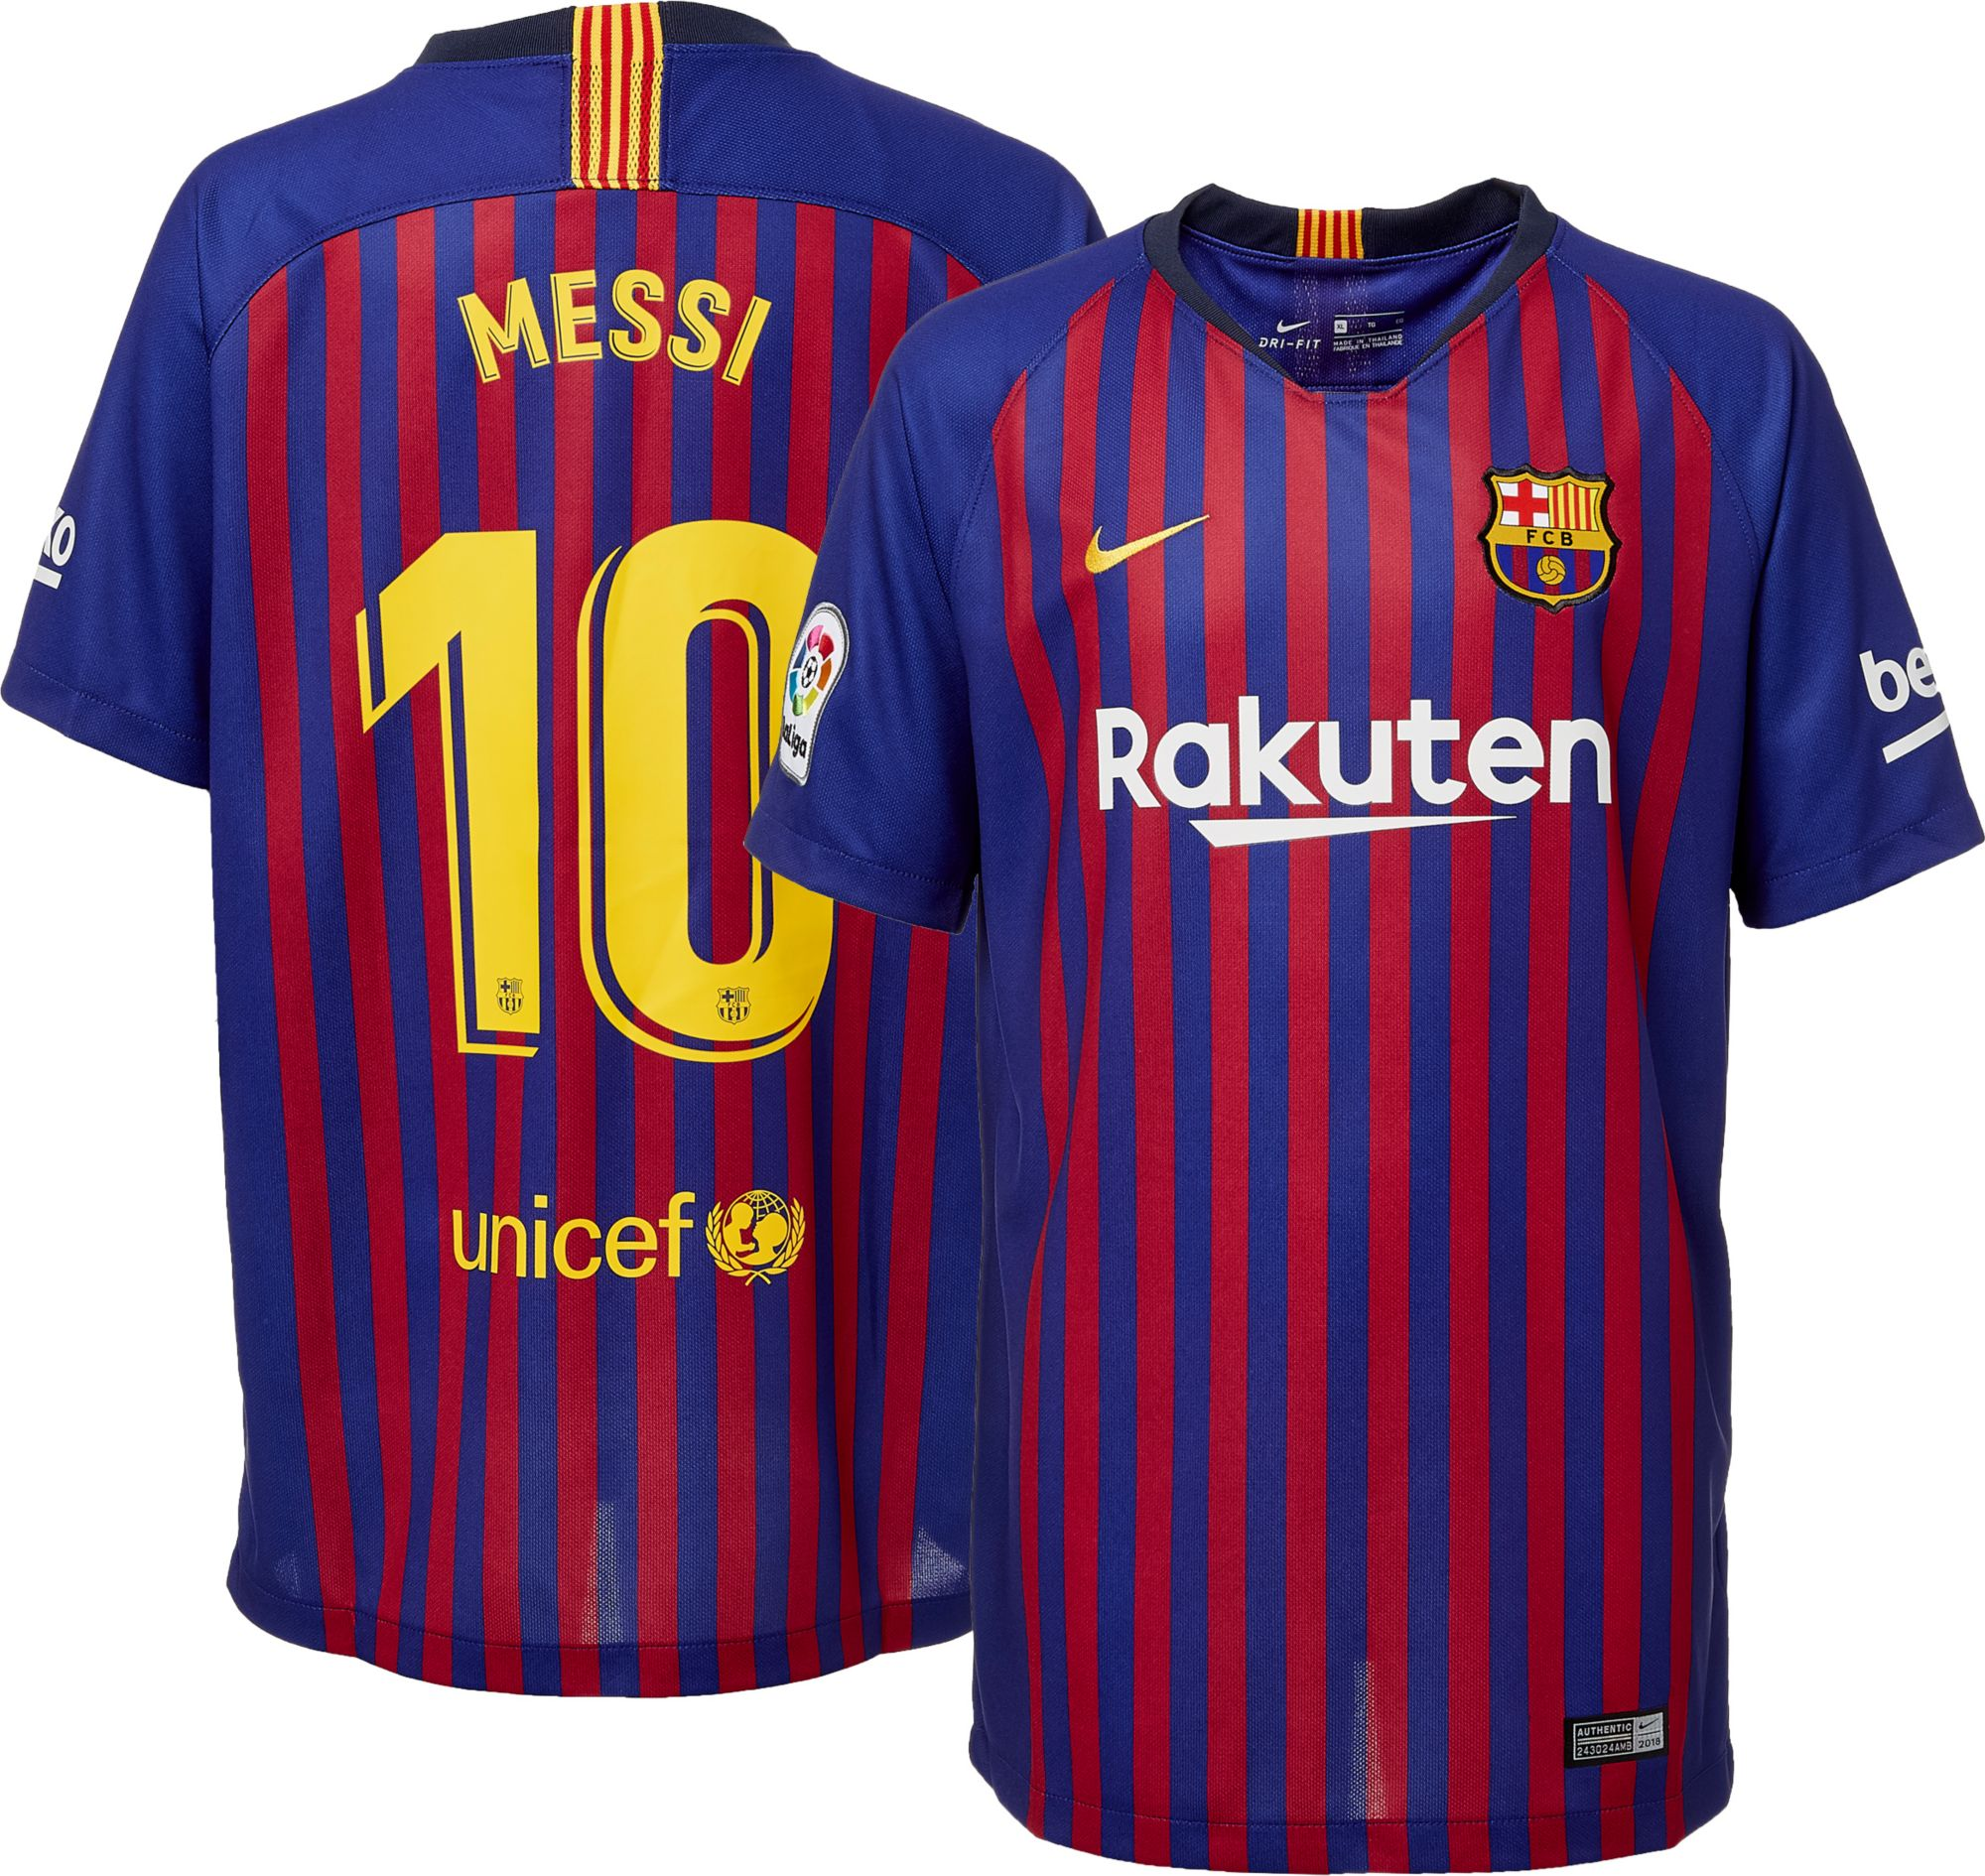 newest 6c0a6 47a6f messi-jersey